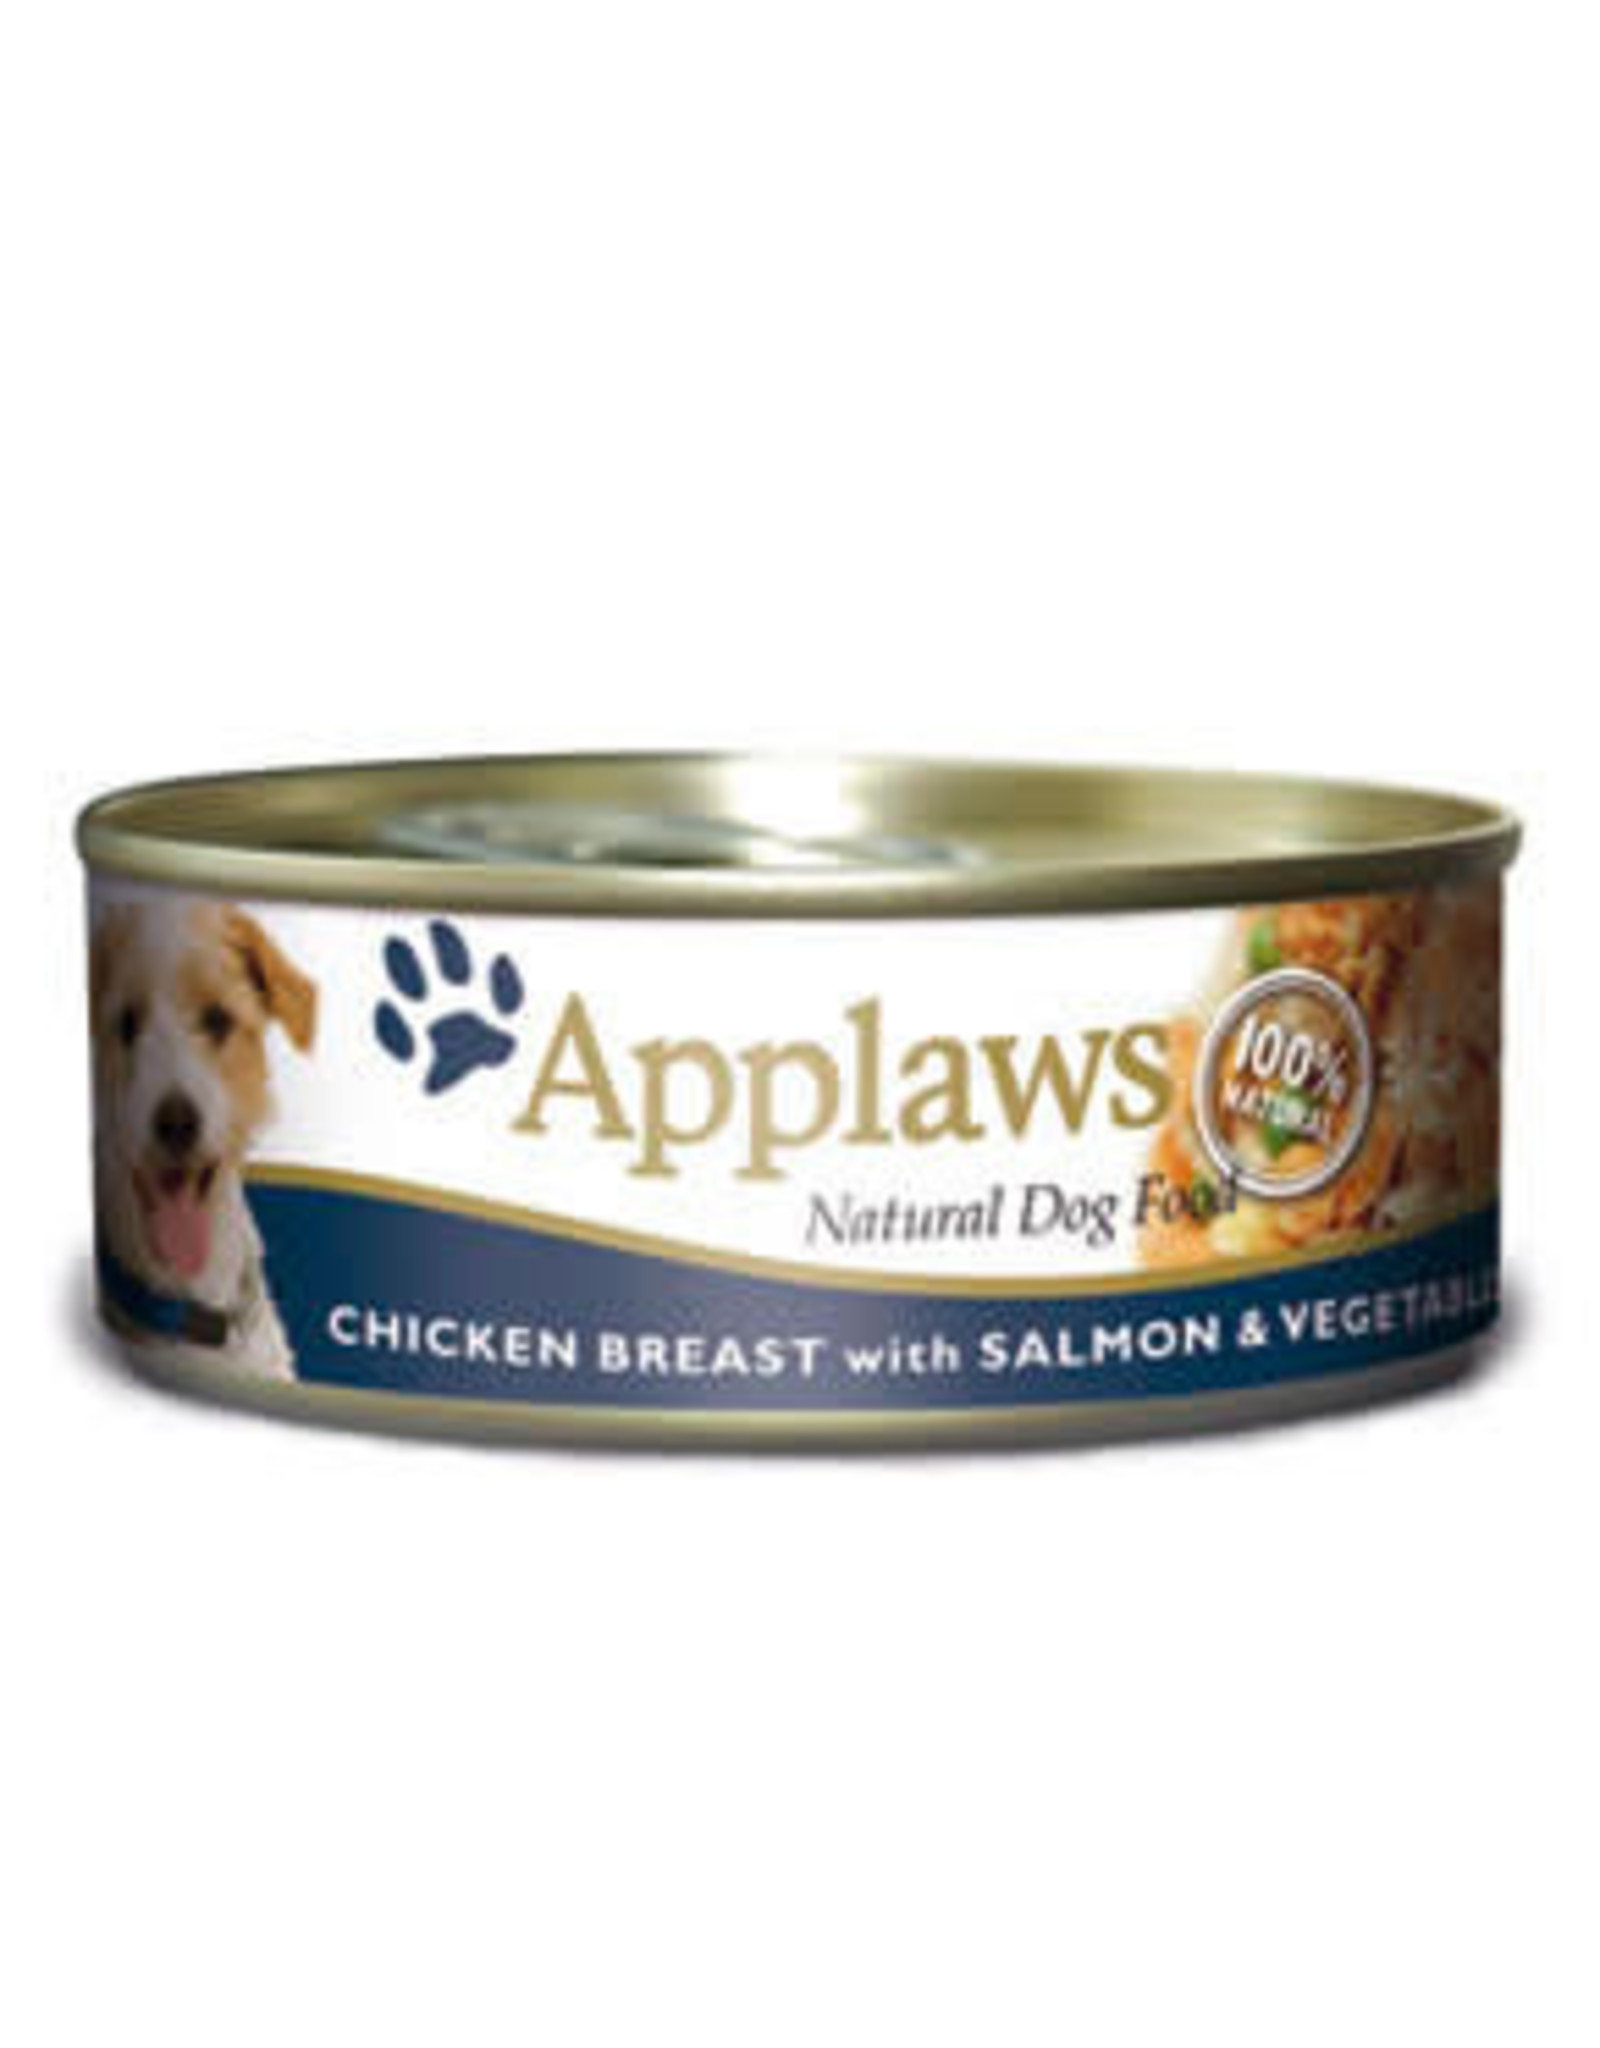 Applaws Dog Wet Food Chicken Breast with Salmon & Vegetables 156g